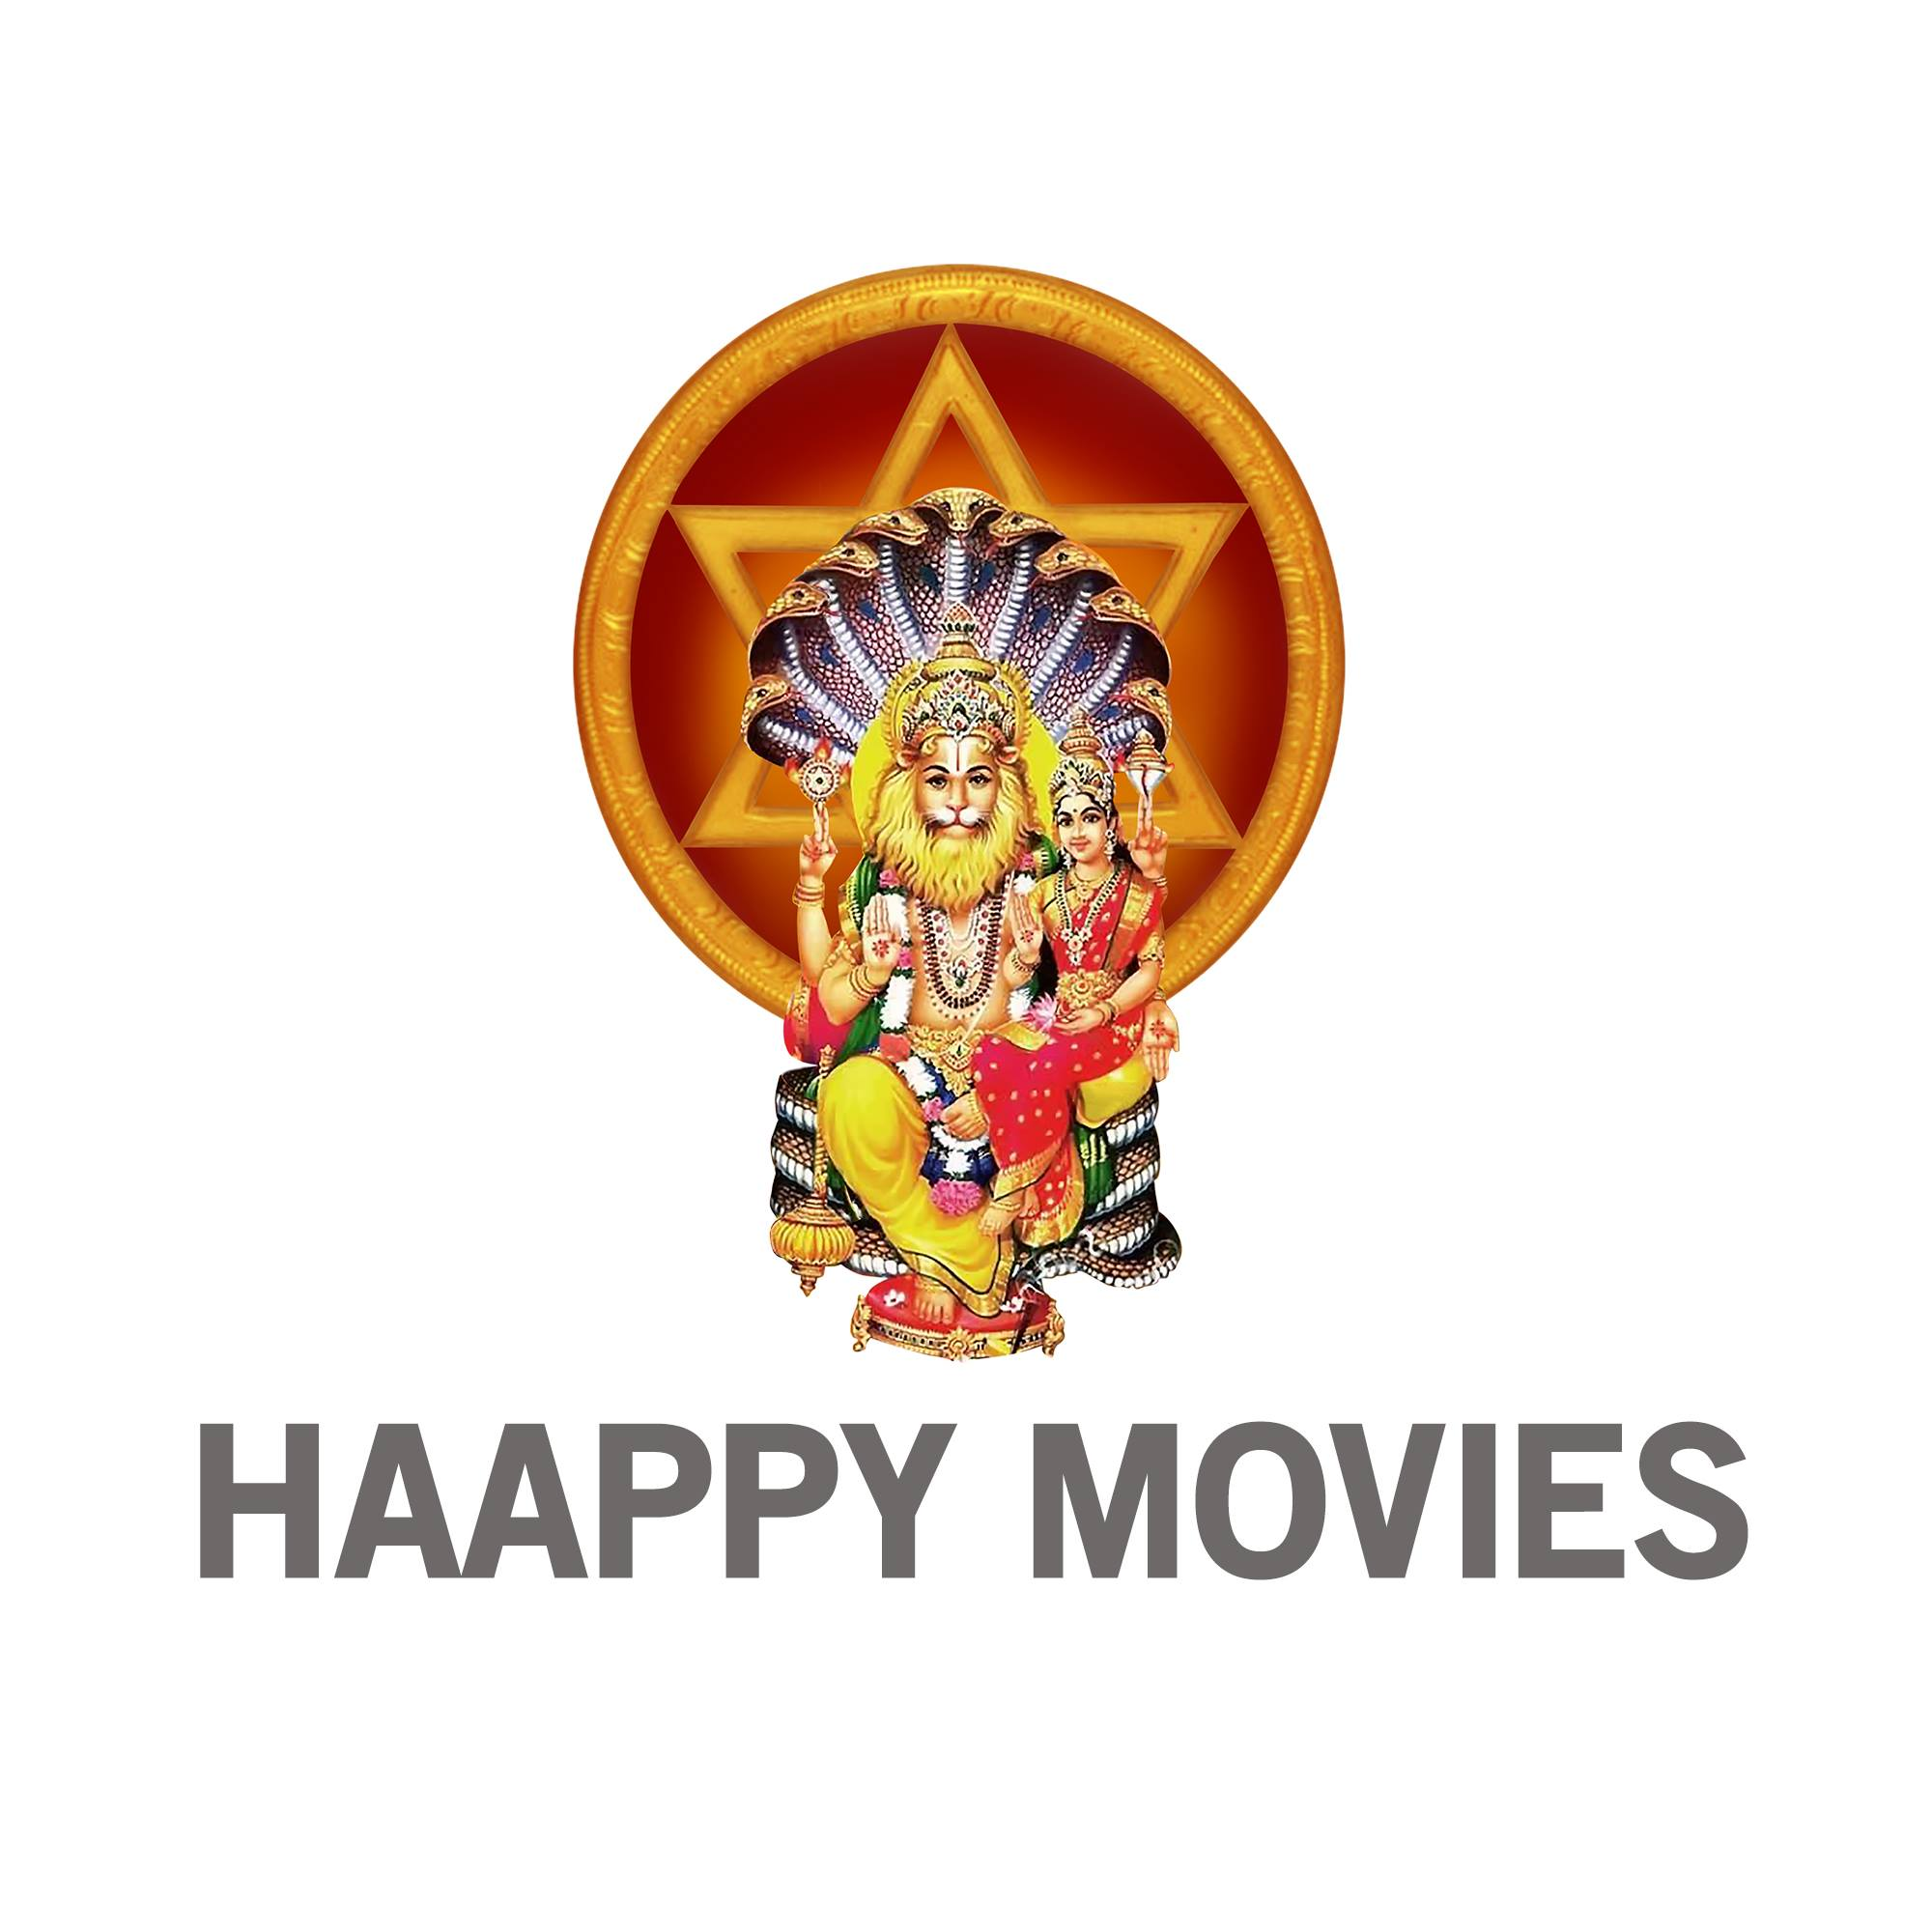 Haappy Movies